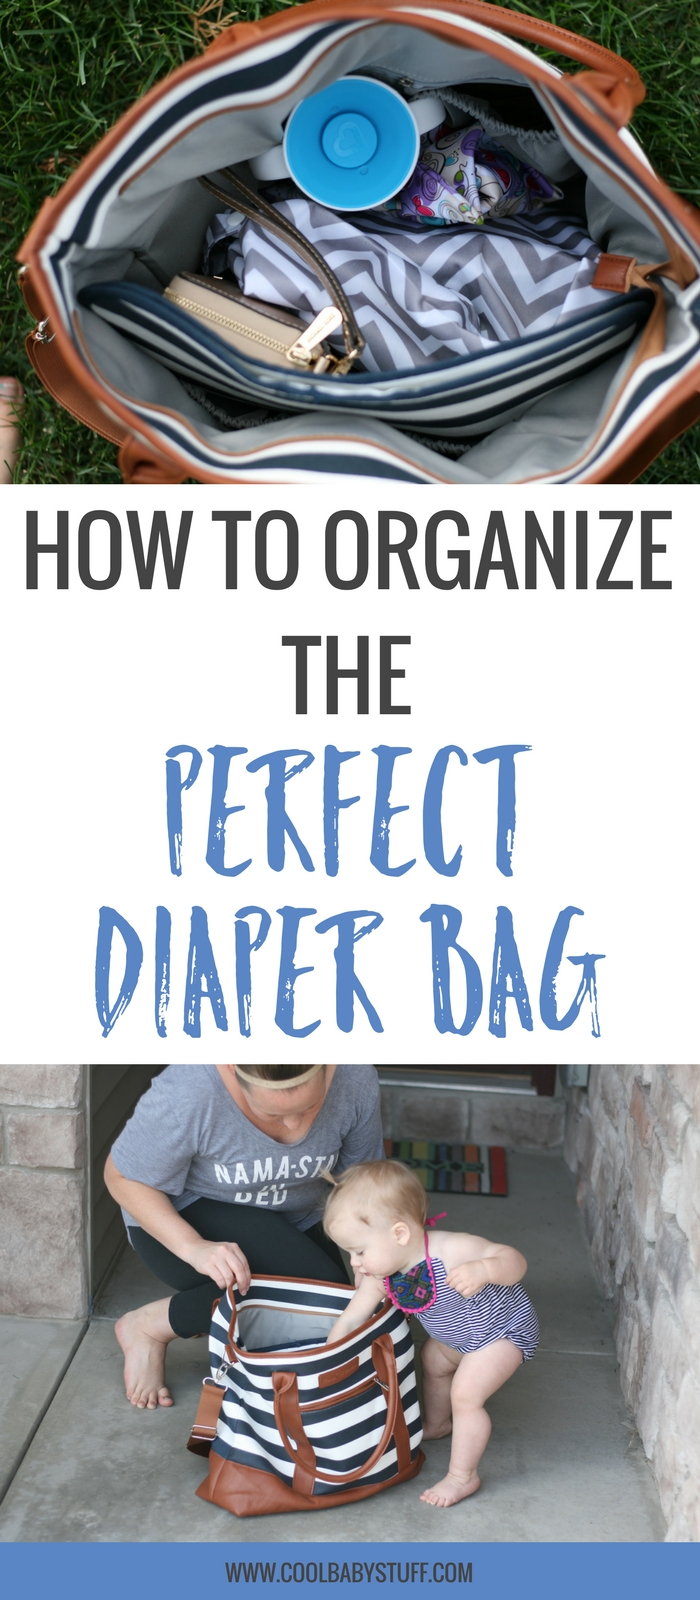 If you're getting ready for baby's arrival and trying to figure out the puzzle of fitting everything into your diaper bag, you might be getting overwhelmed. Don't be scared! Here are 5 simple steps for organizing the perfect diaper bag.